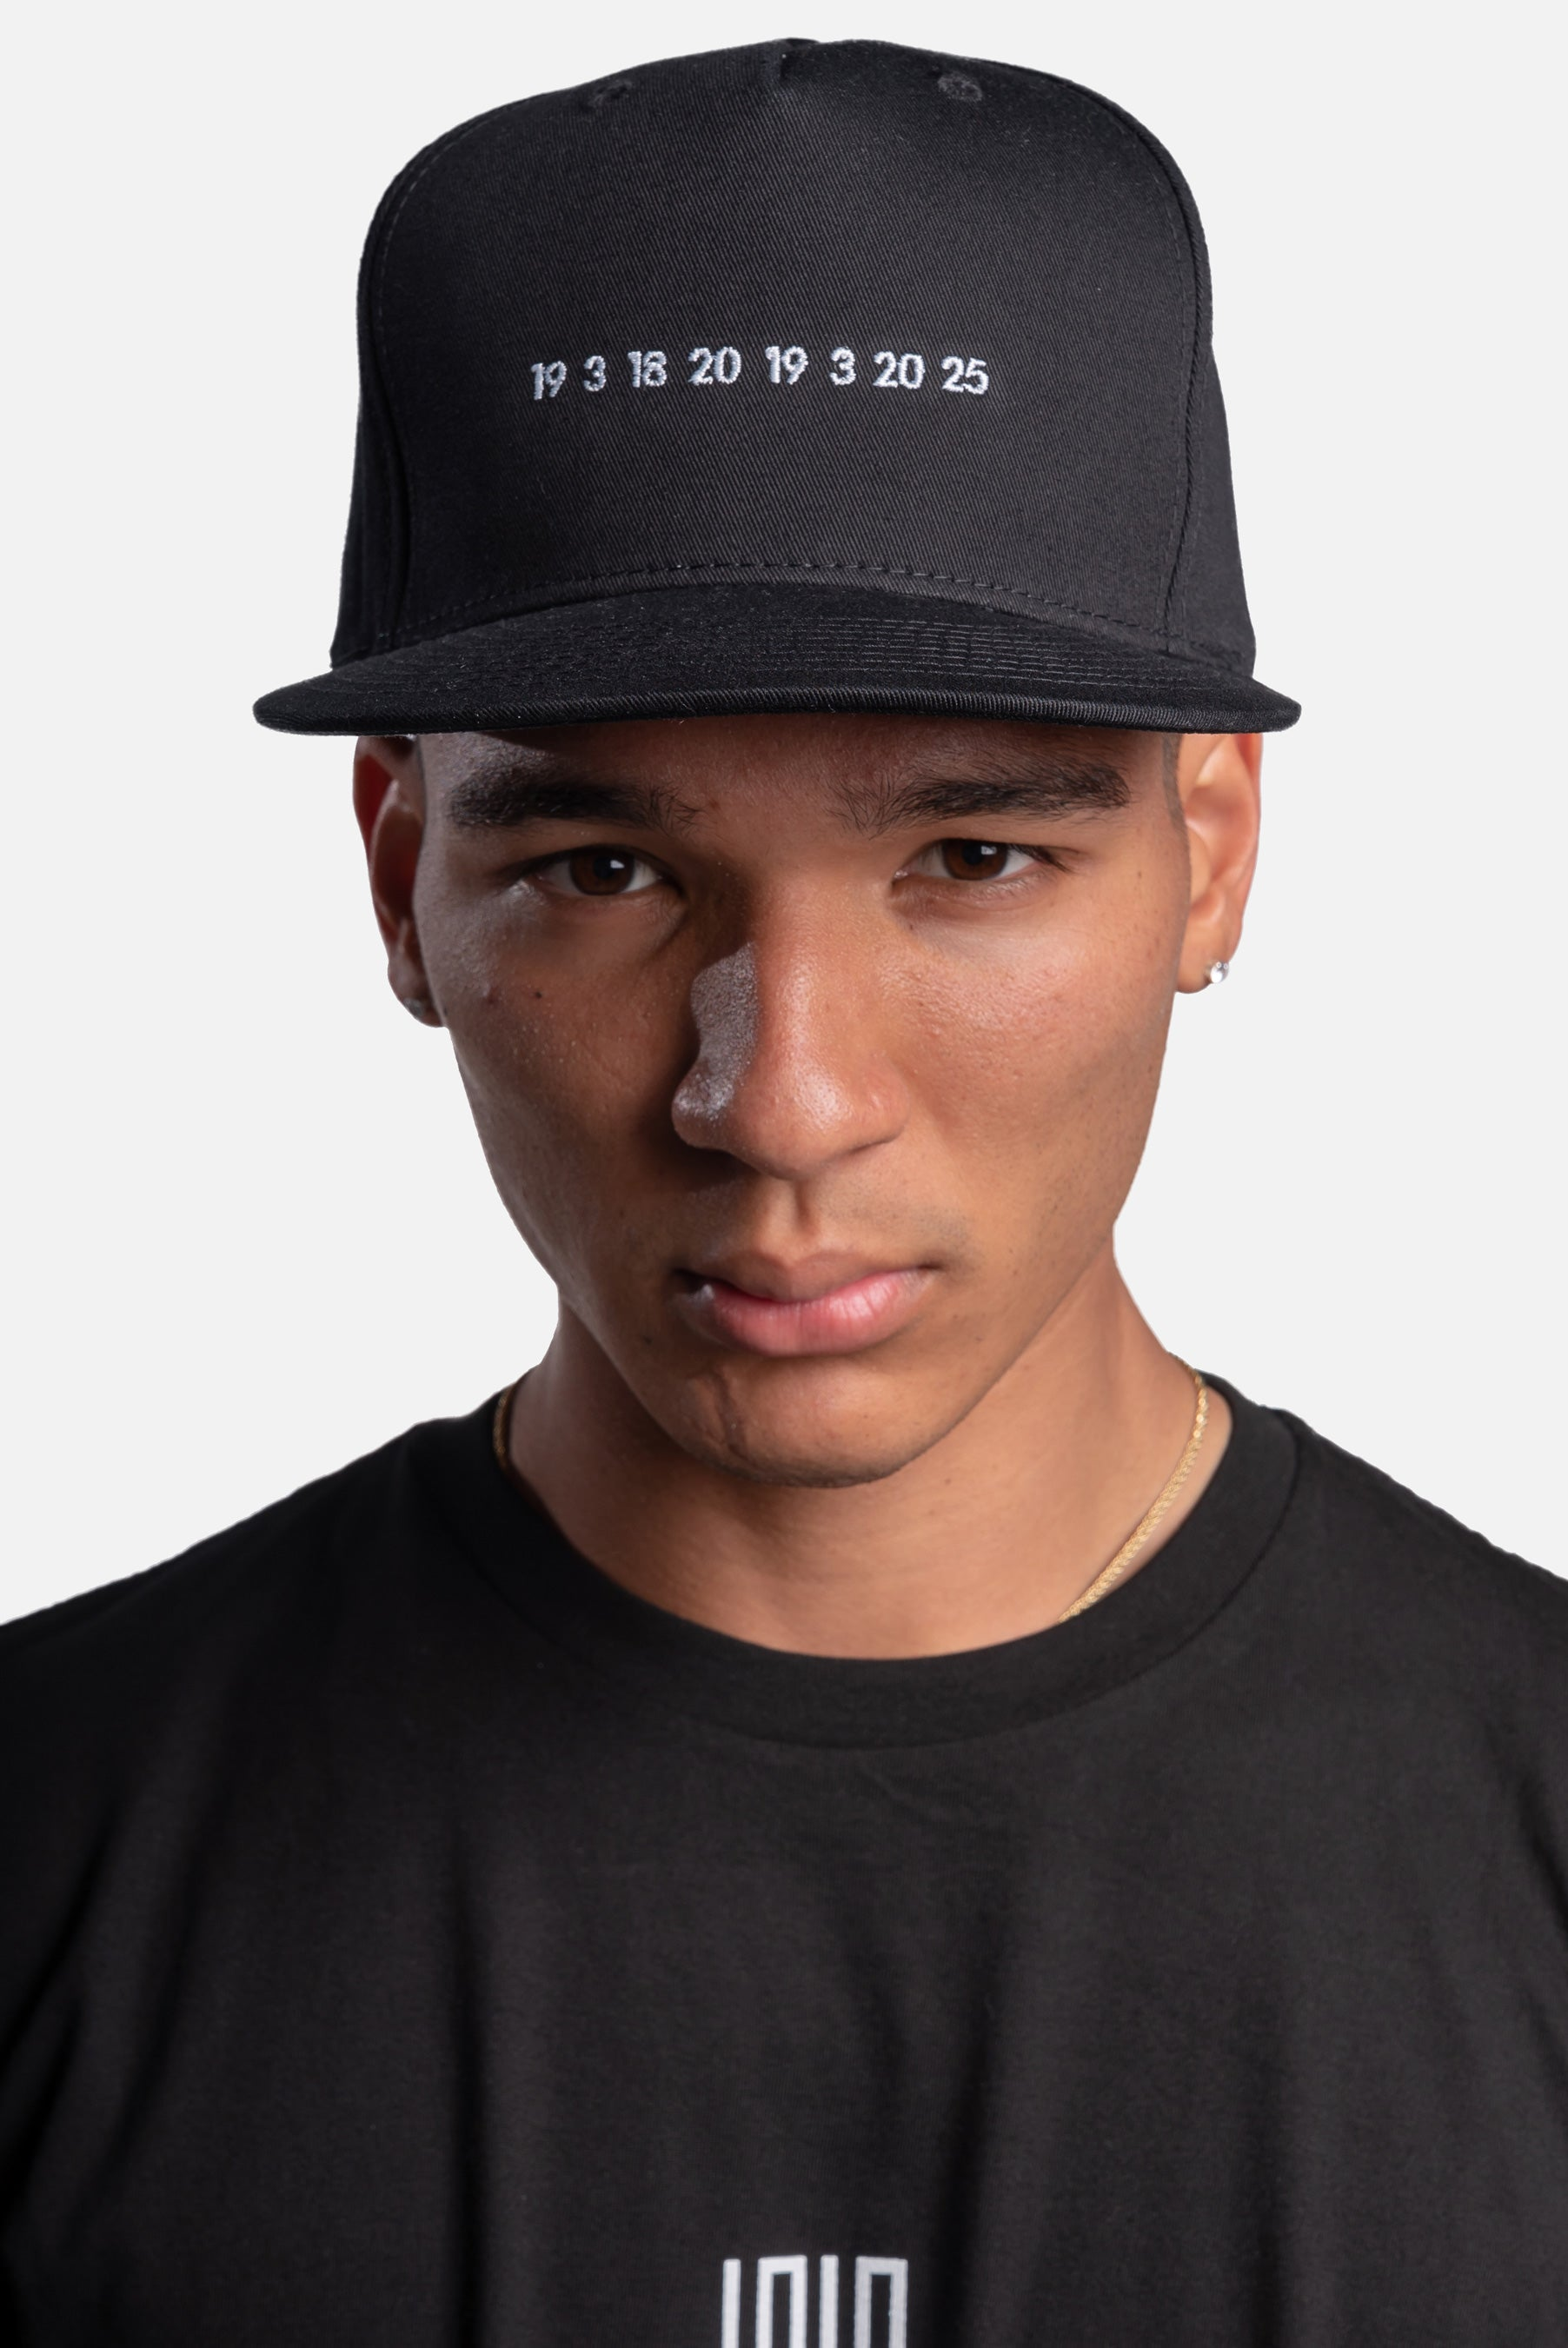 napa article 7 5-panel snapback hat - scrt society